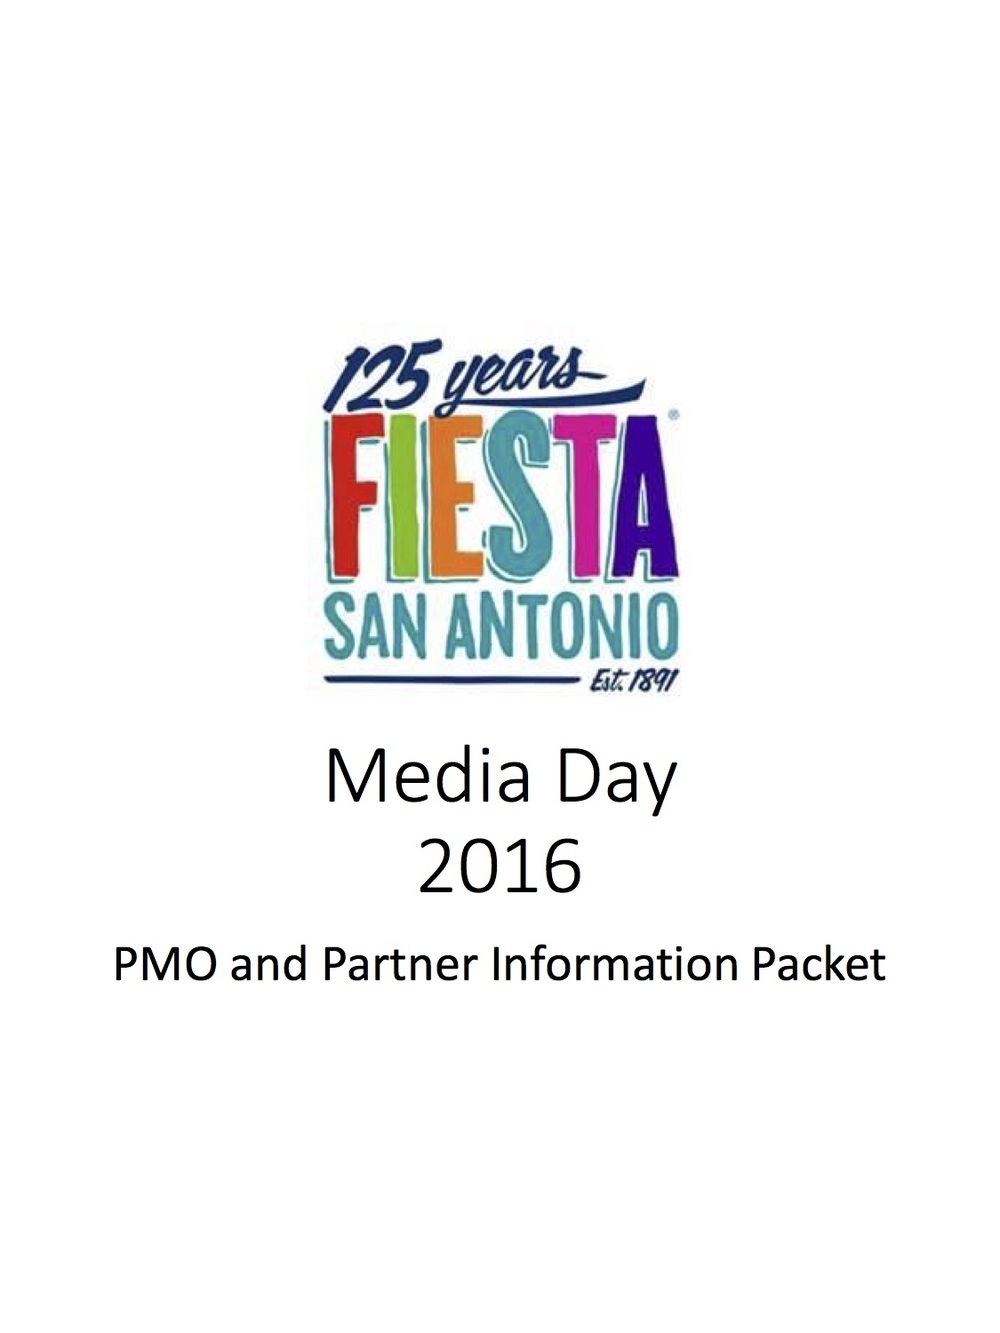 Info Packets: Fiesta Media Day Attendee and Media Pack